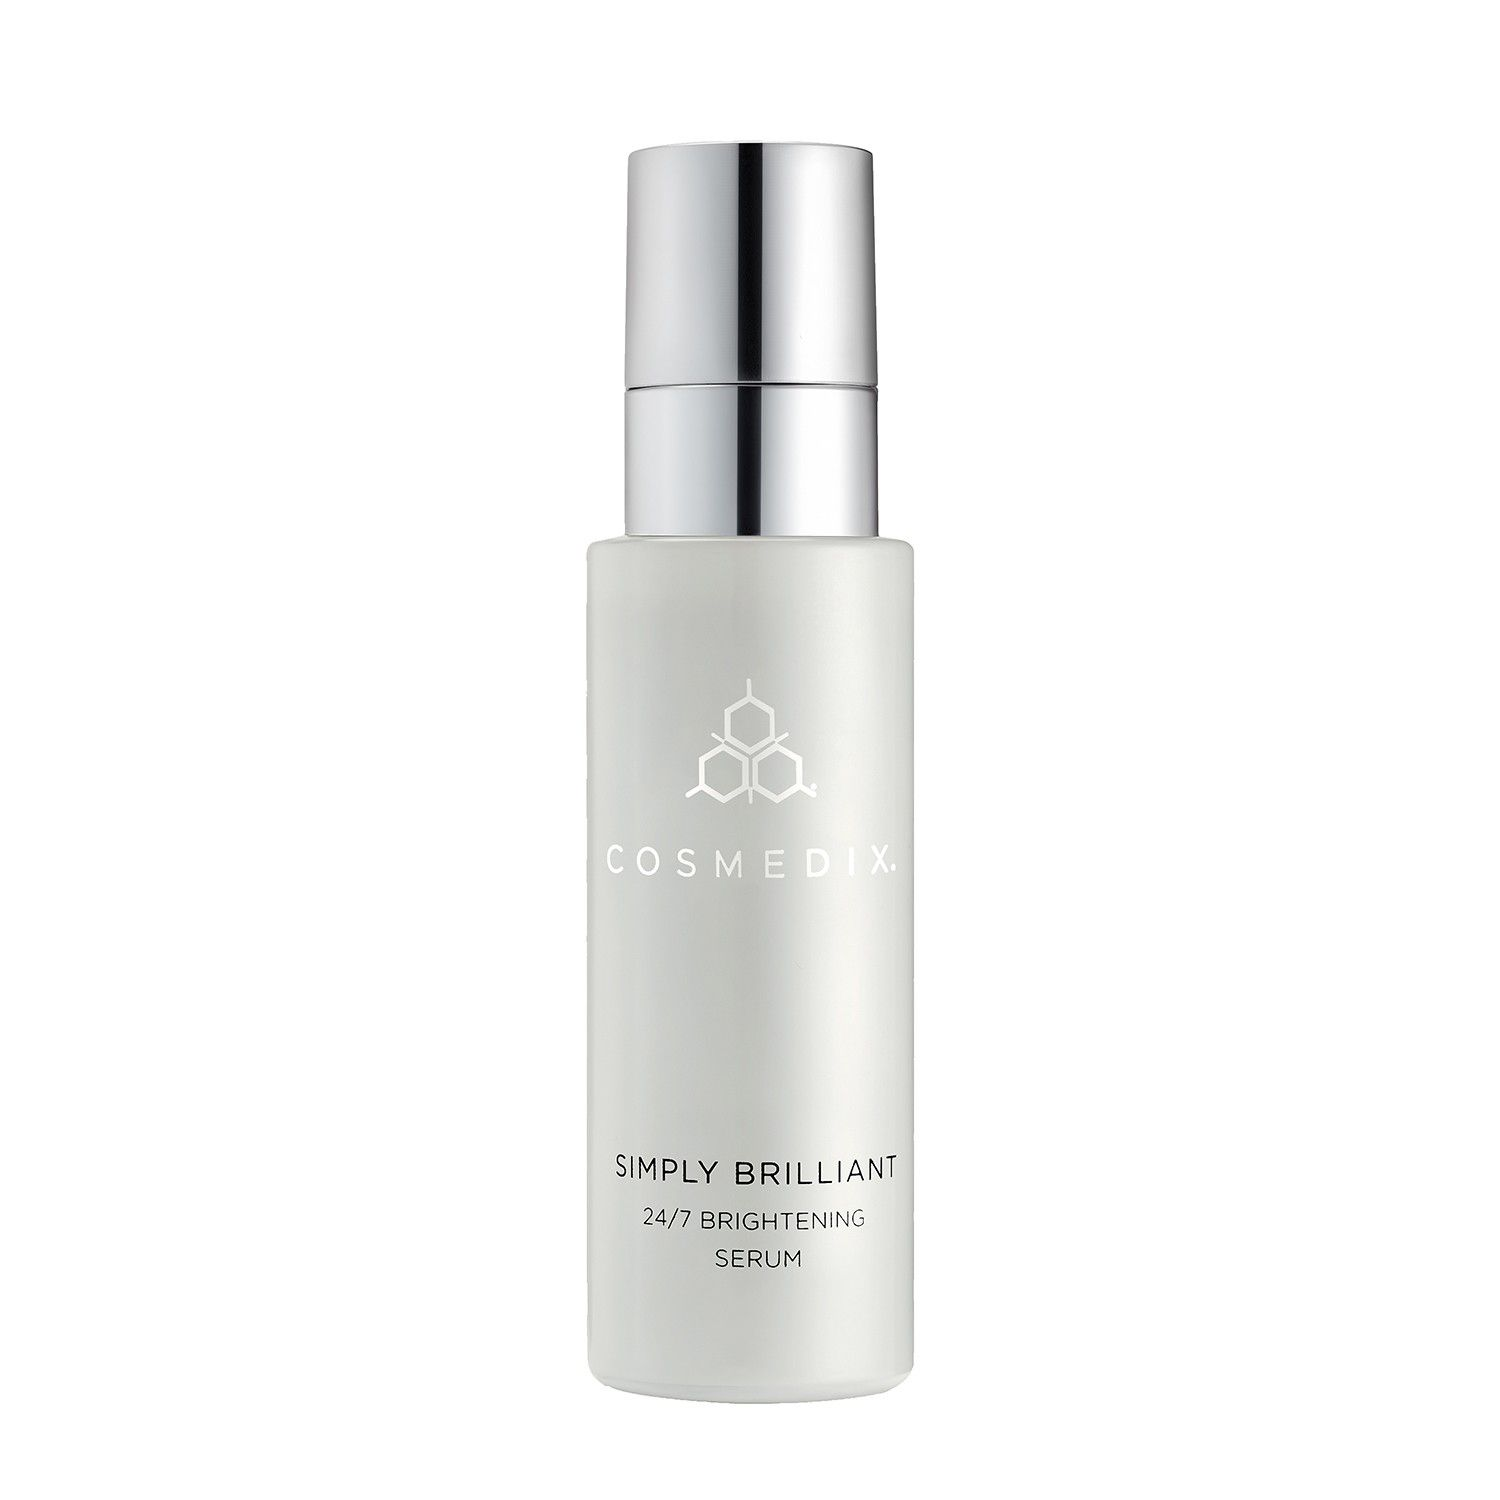 Buy CosMedix SIMPLY BRILLIANT 24/7 BRIGHTENING SERUM (1.0 fl oz / 30 ml)